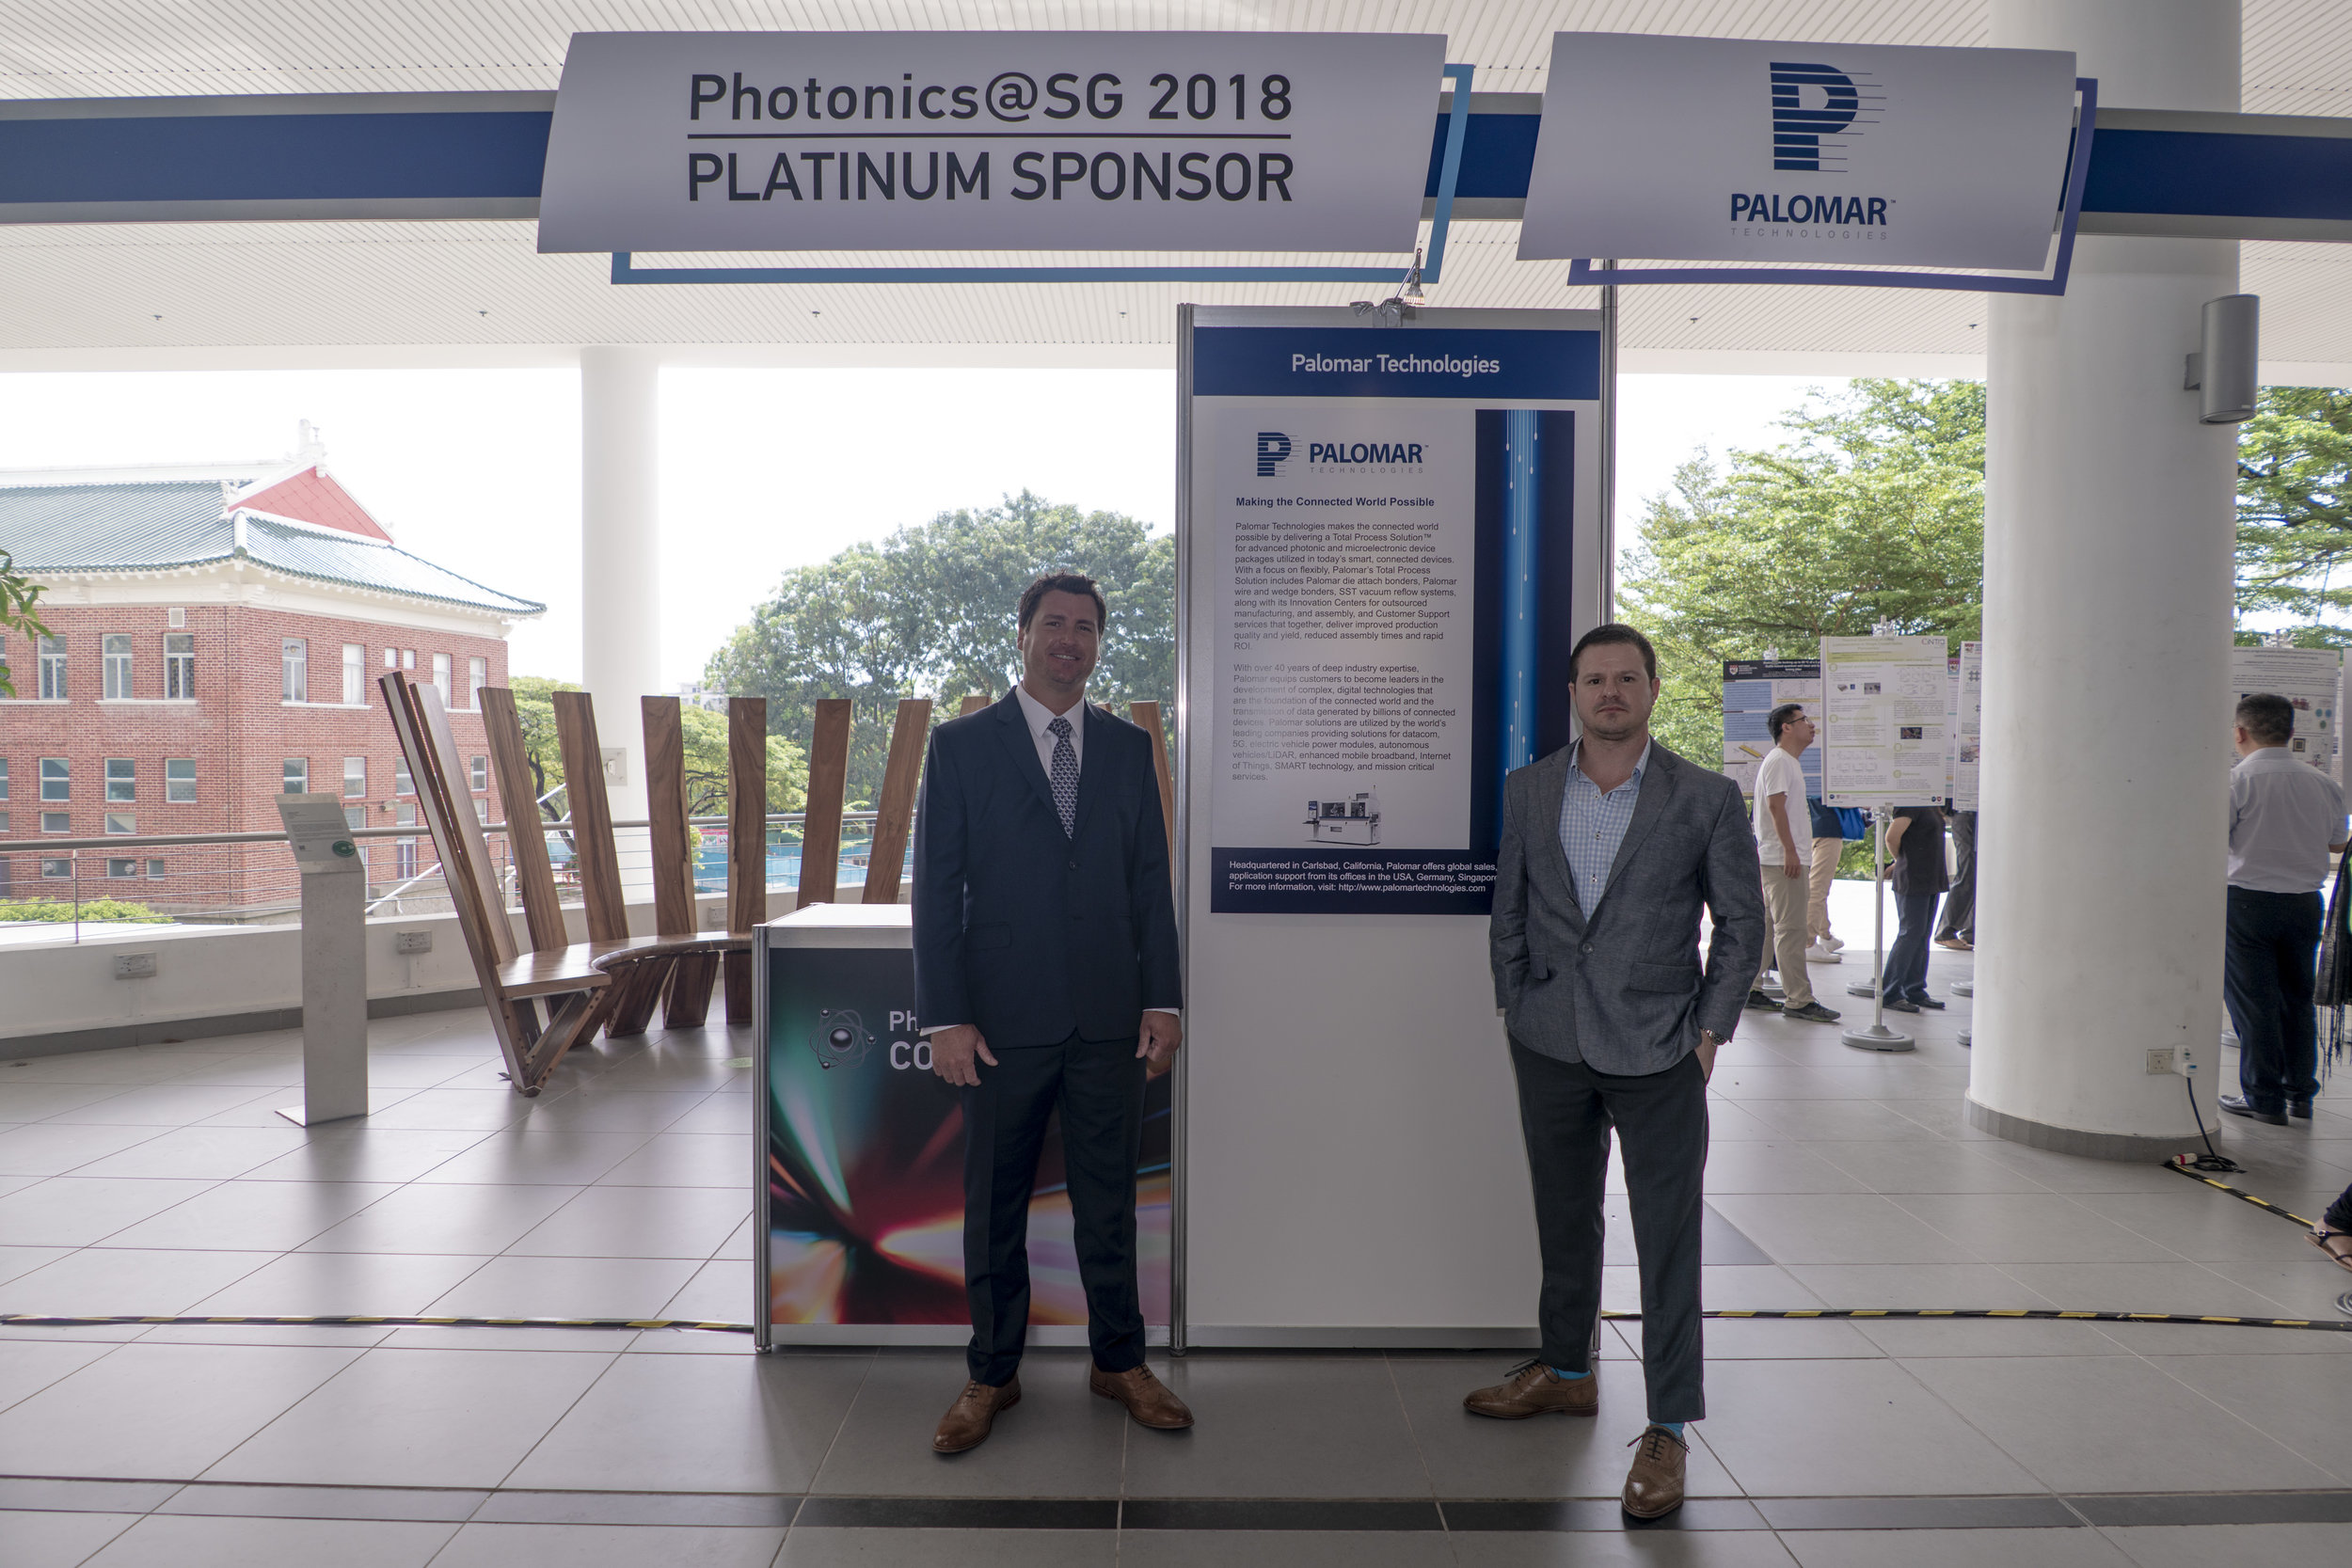 TPI Photonics SG 2018 Conference n Exhibition 0211rc.jpg